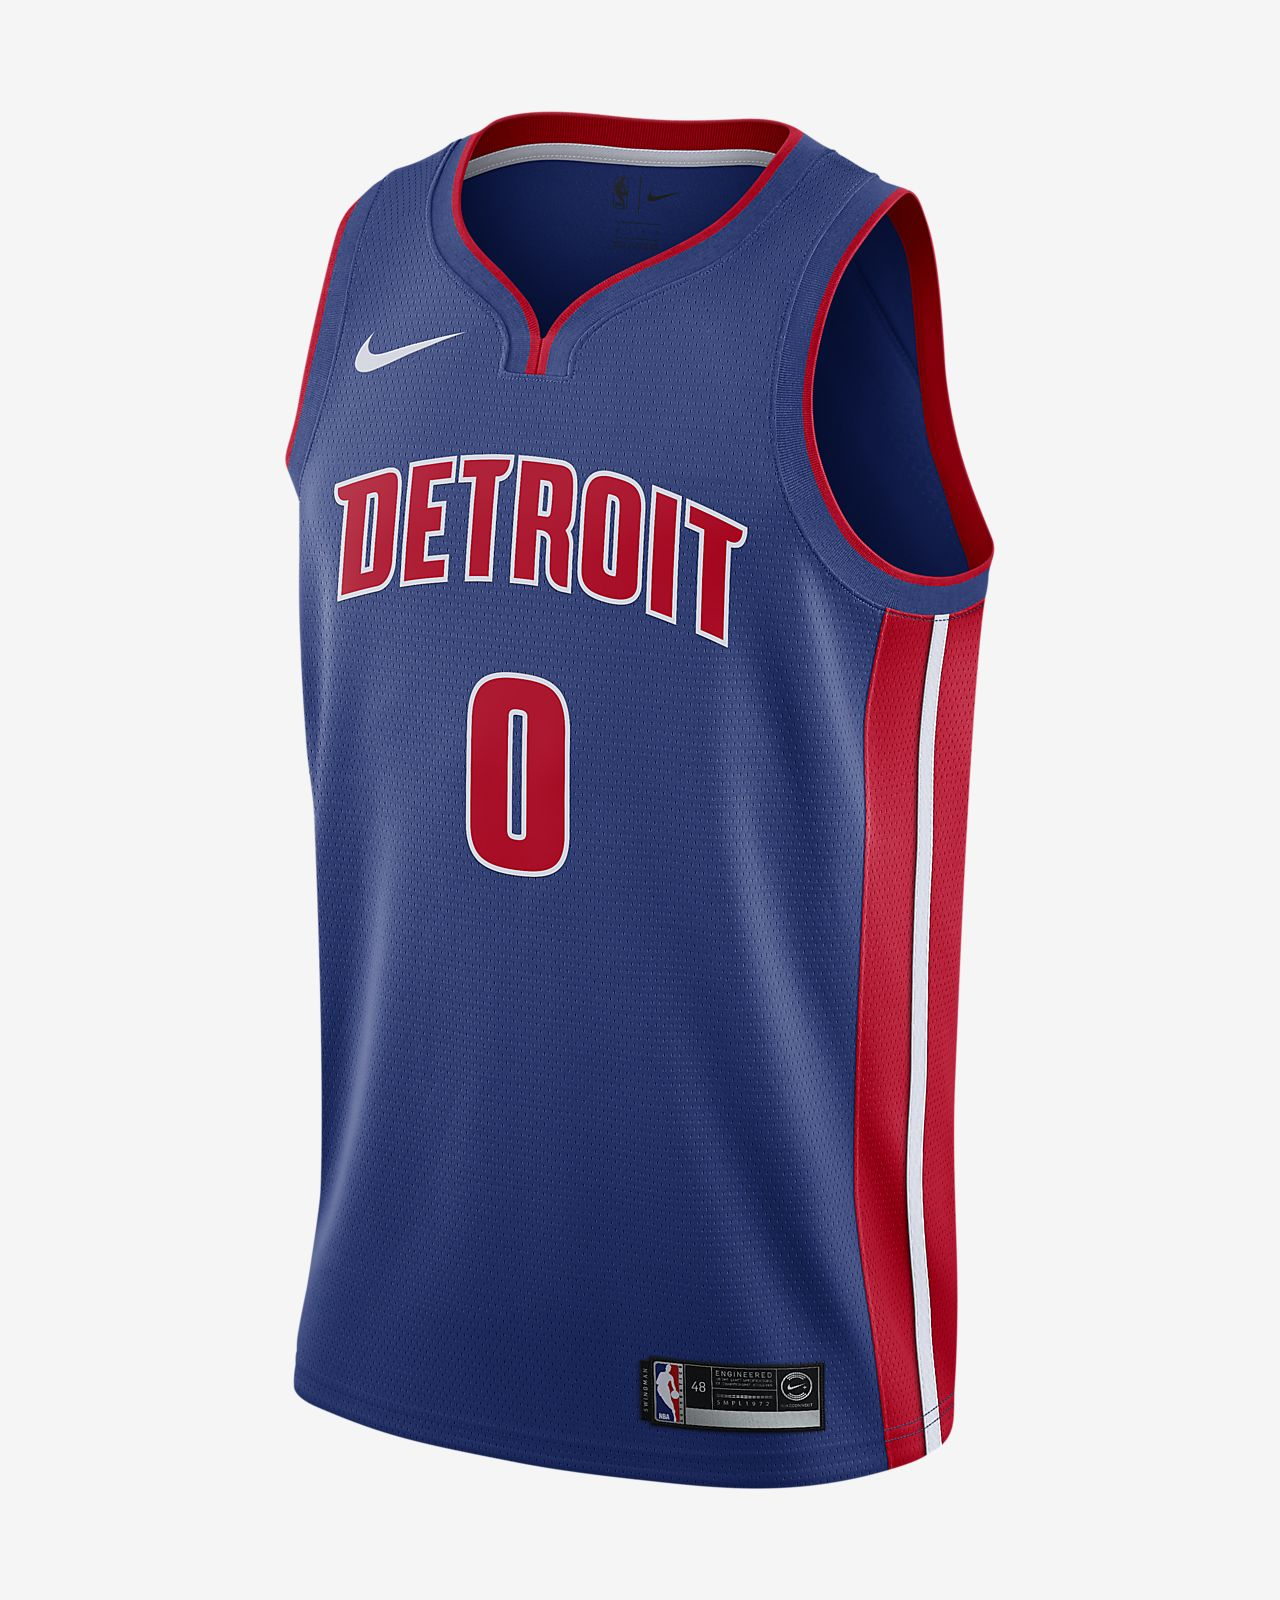 457e24fcc7a Men s Nike NBA Connected Jersey. Andre Drummond Icon Edition Swingman (Detroit  Pistons)